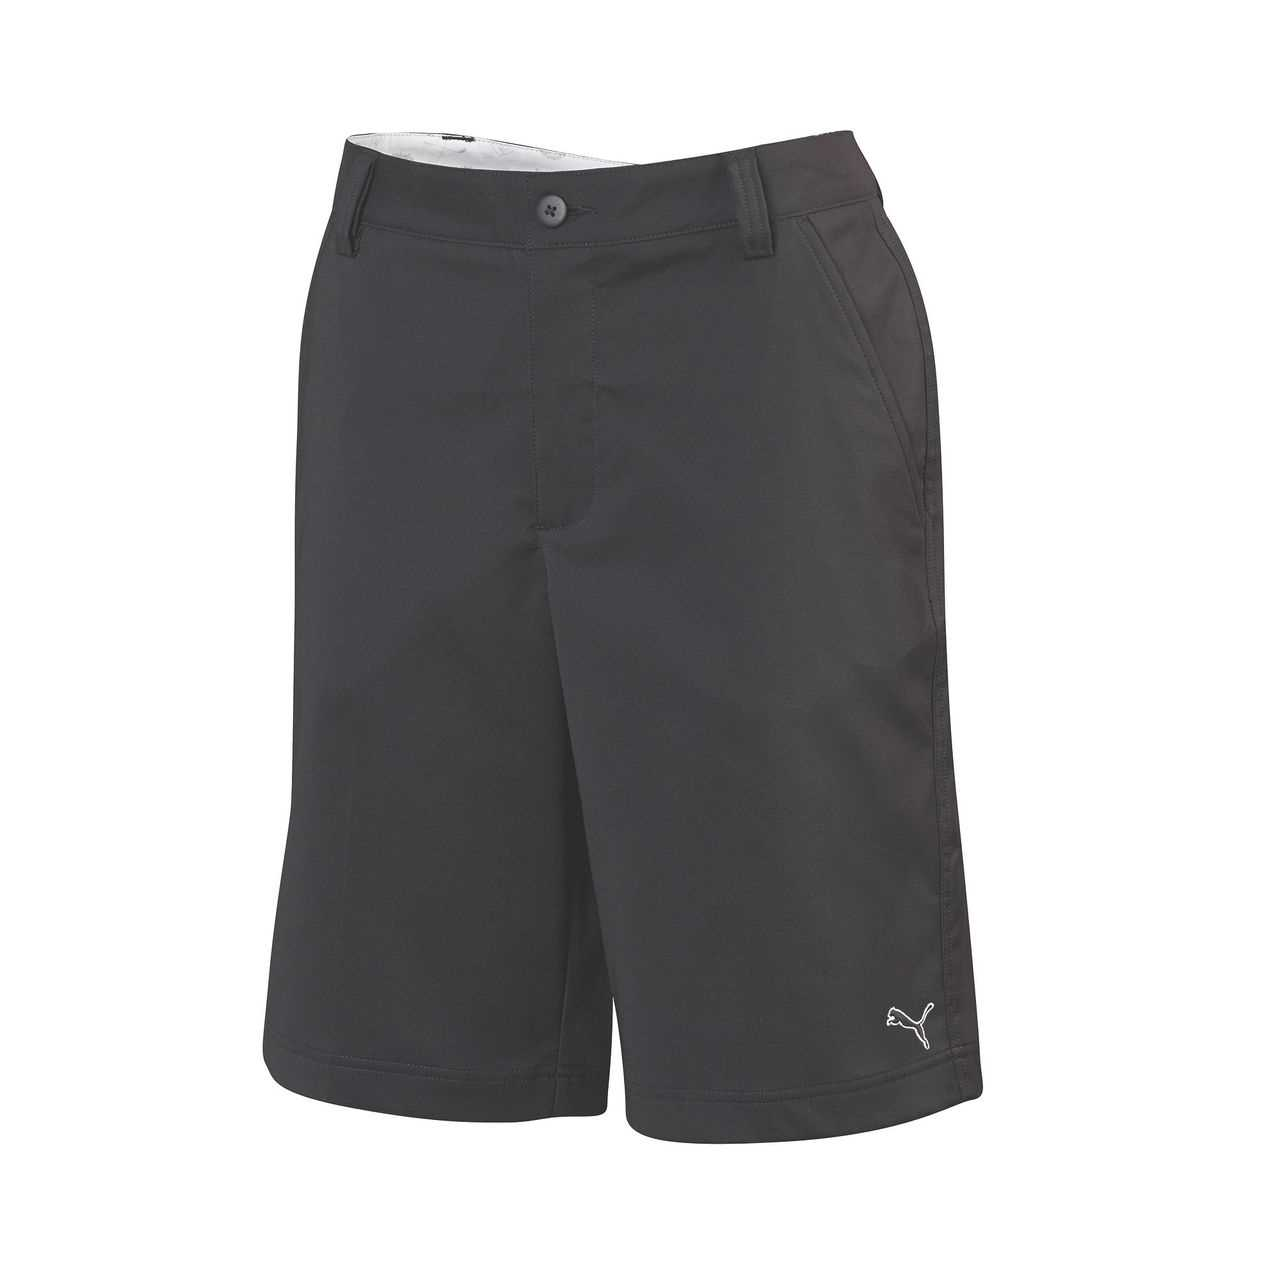 d171f87c0ebb Puma Golf Men s Solid Tech Shorts - Black